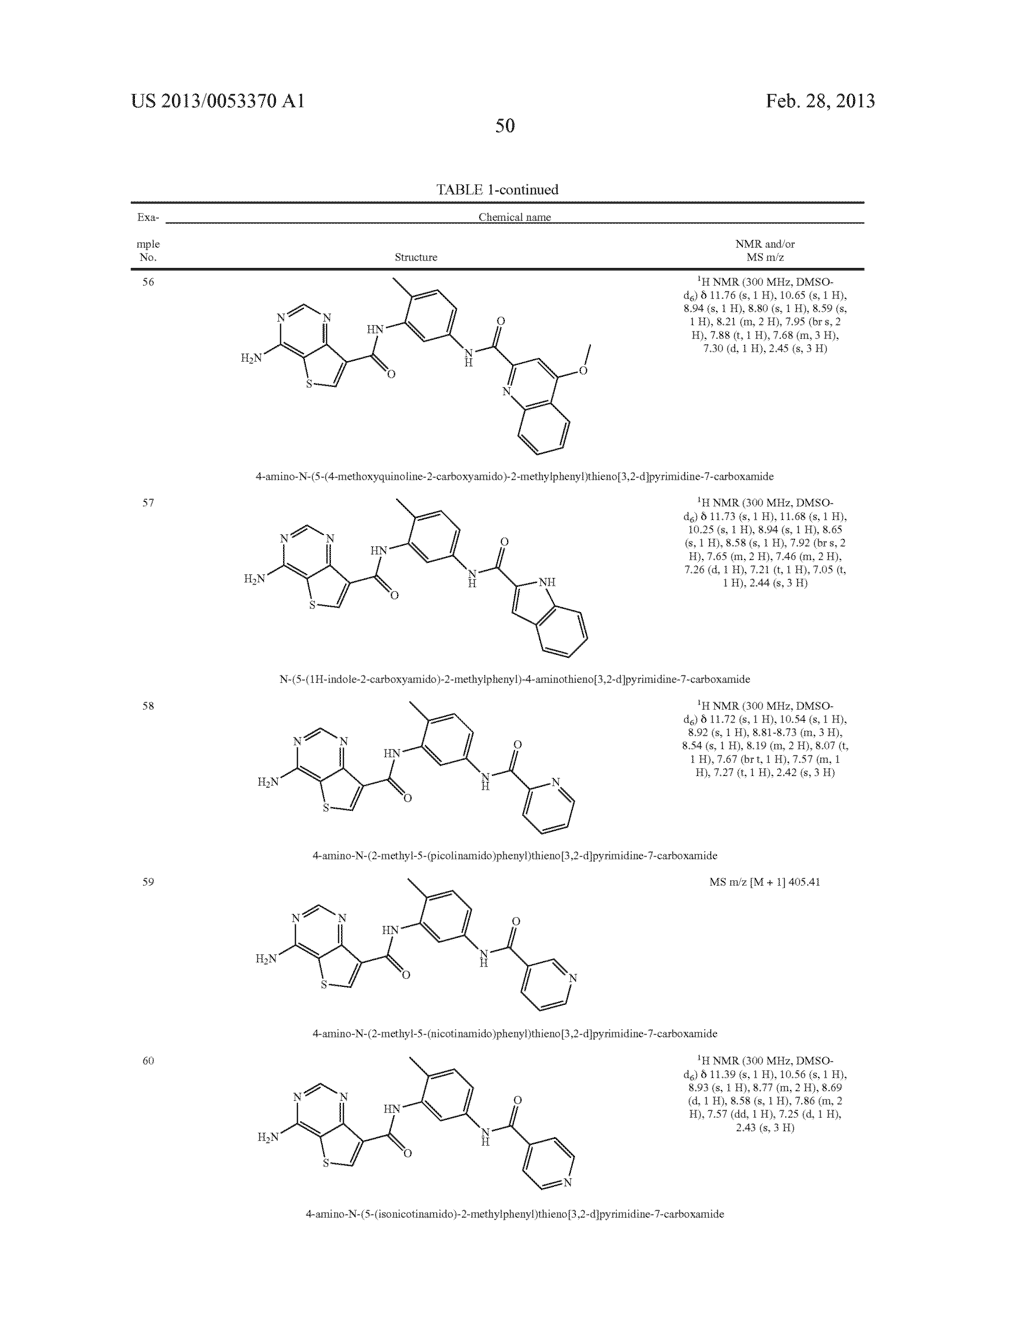 THIENO[3,2-d]PYRIMIDINE DERIVATIVES HAVING INHIBITORY ACTIVITY ON PROTEIN     KINASES - diagram, schematic, and image 51